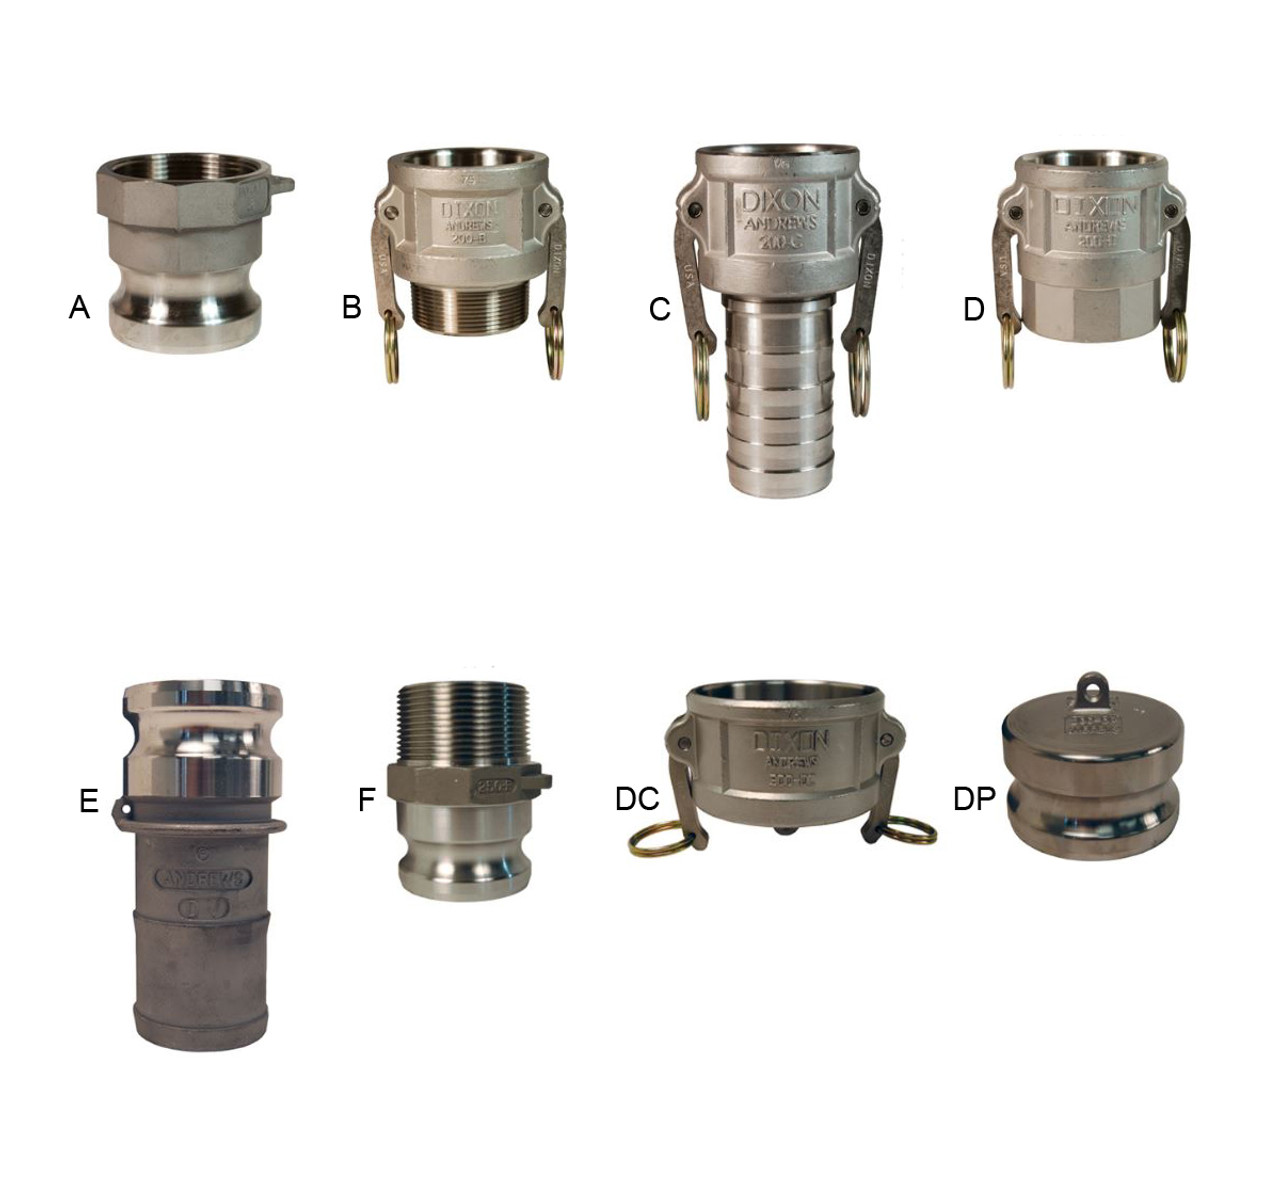 Dixon in stainless steel cam groove quick couplings